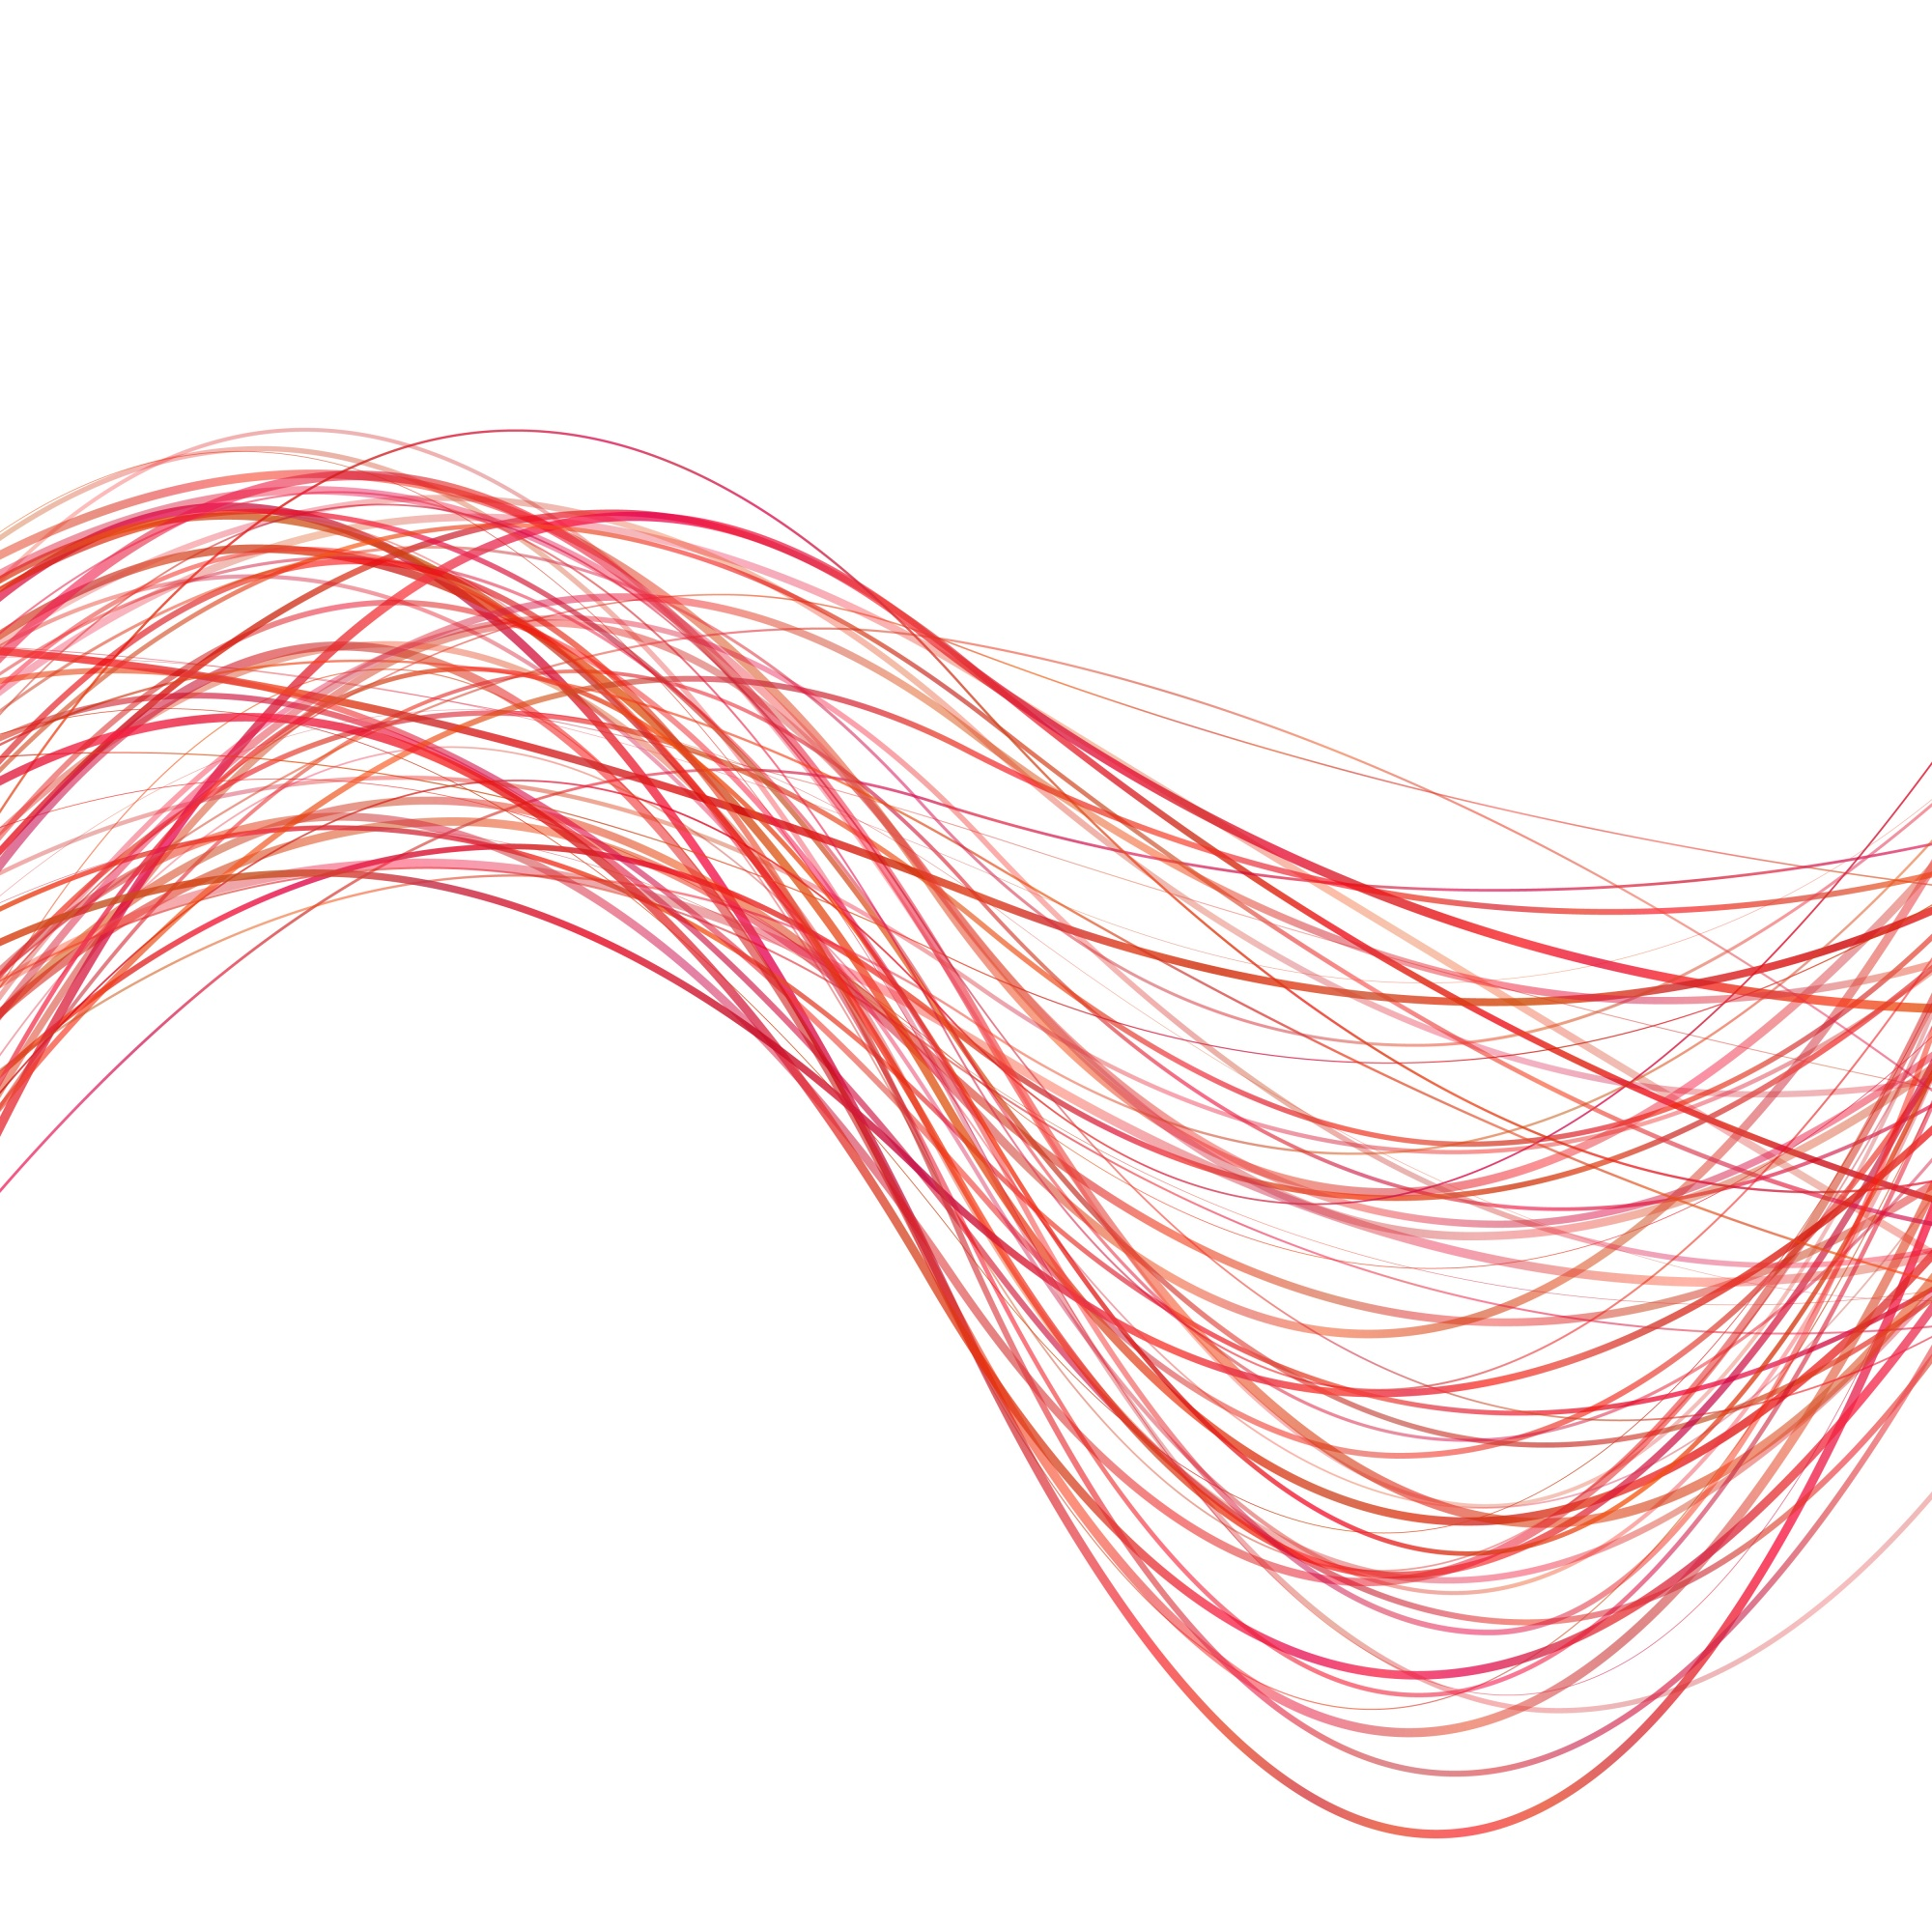 Dynamic abstract wave line background - vector illustration from red curved stripes